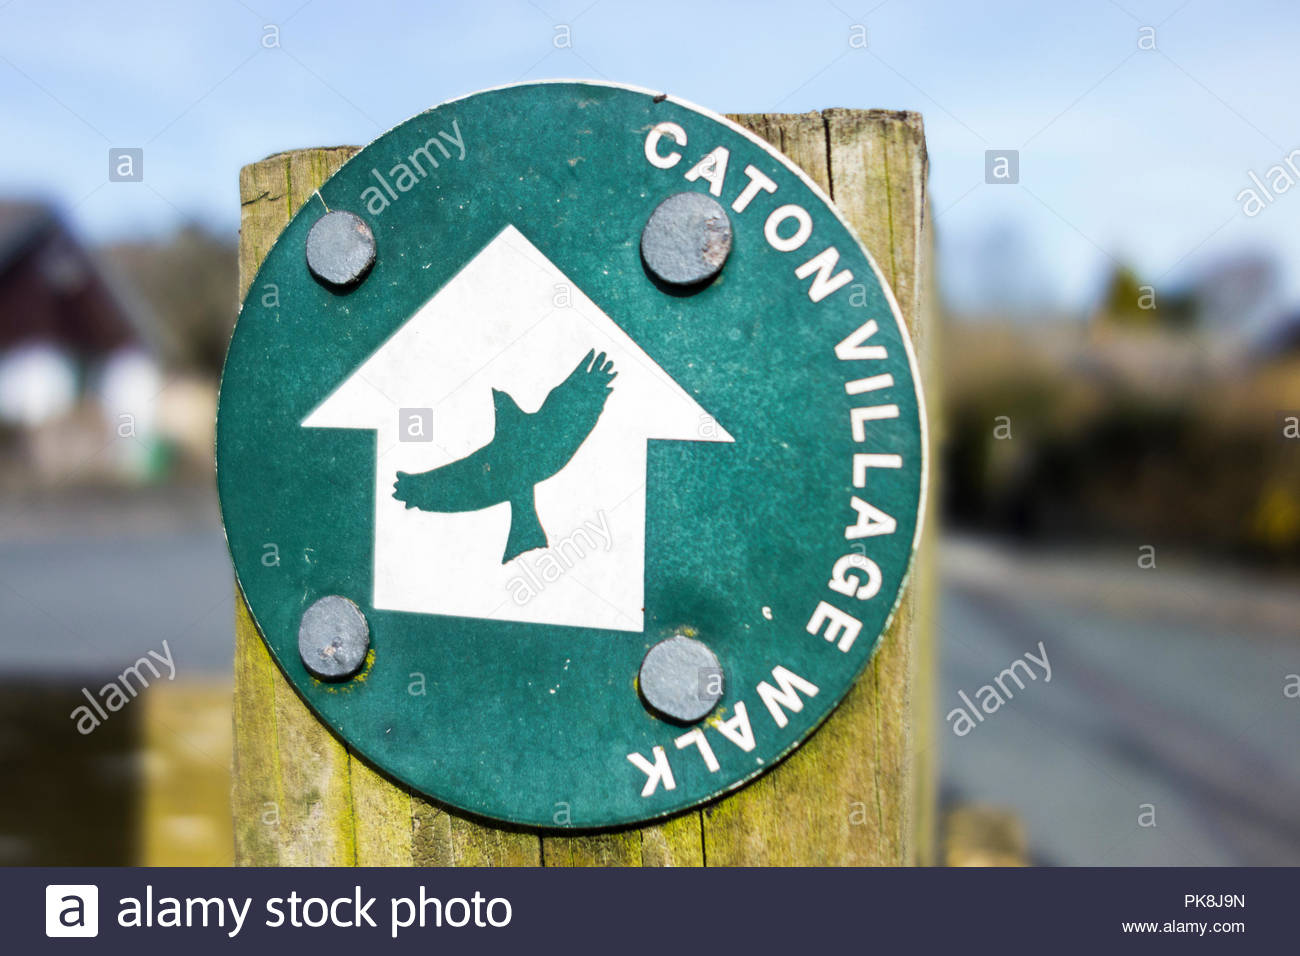 Footpath sign for the Caton Village Walk, near Lancaster, UK - Stock Image